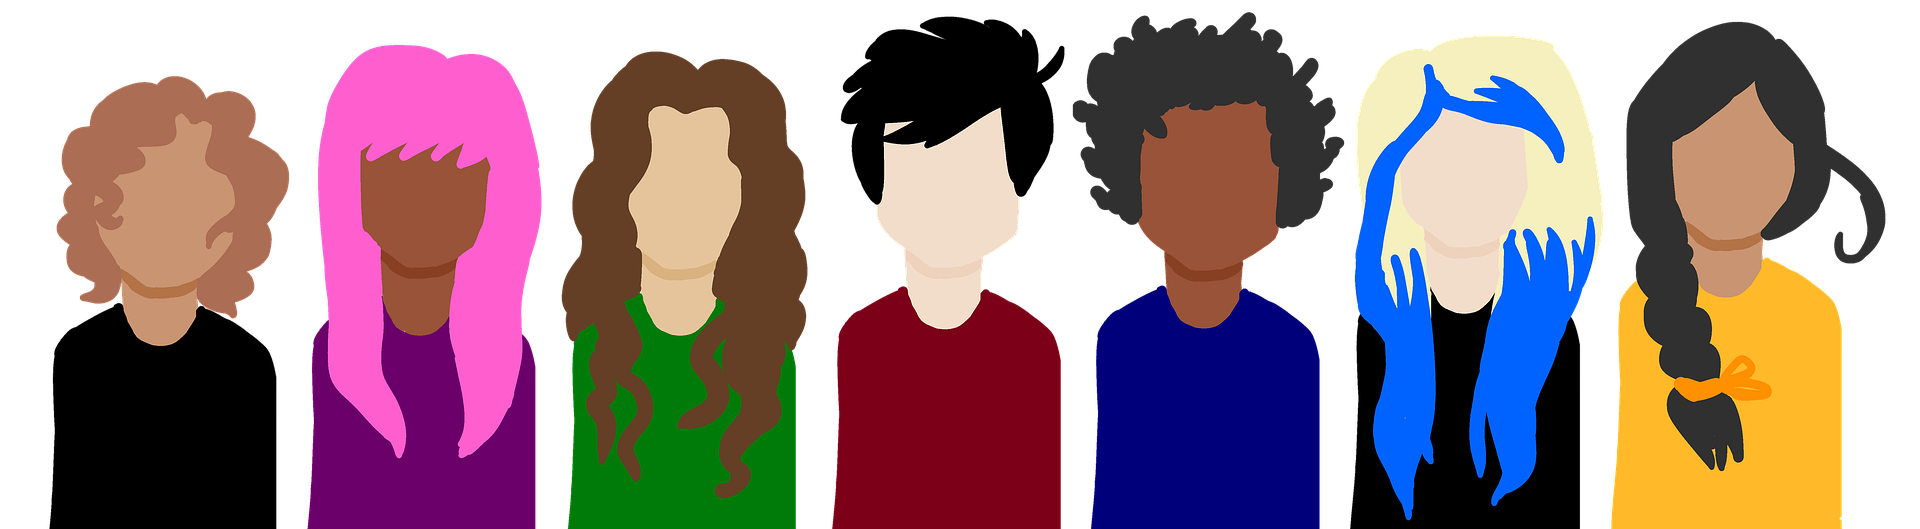 Image shows a line of people of differing ages and characteristics